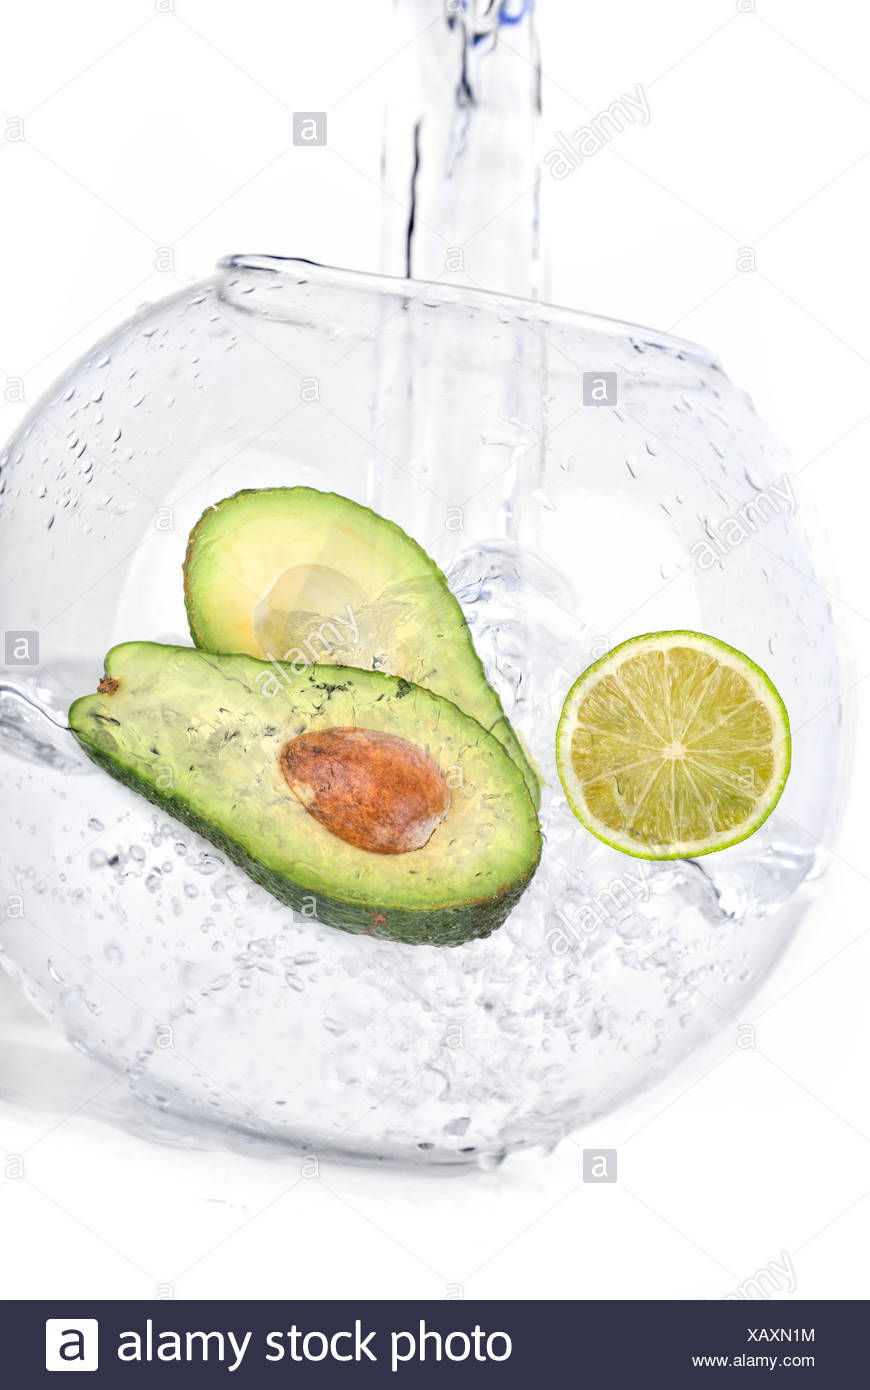 limes in water avocado - Stock Image